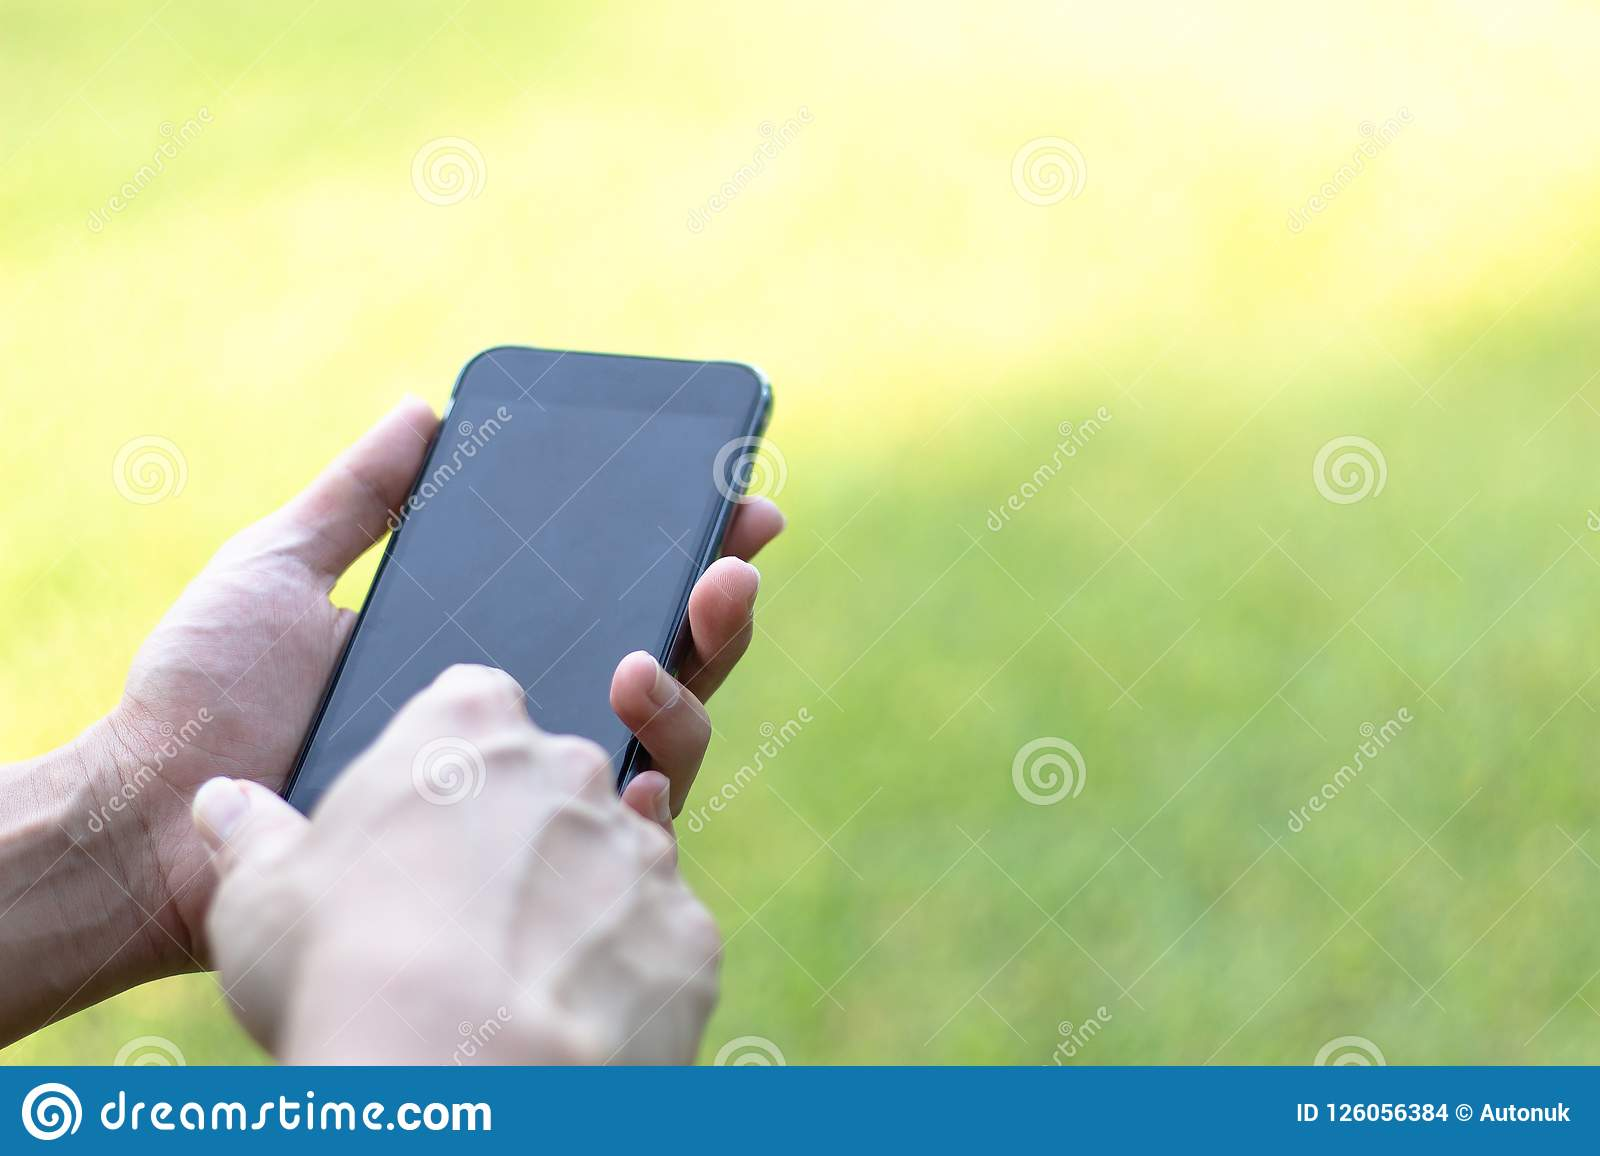 Close-up image of male hands using black smartphone in park